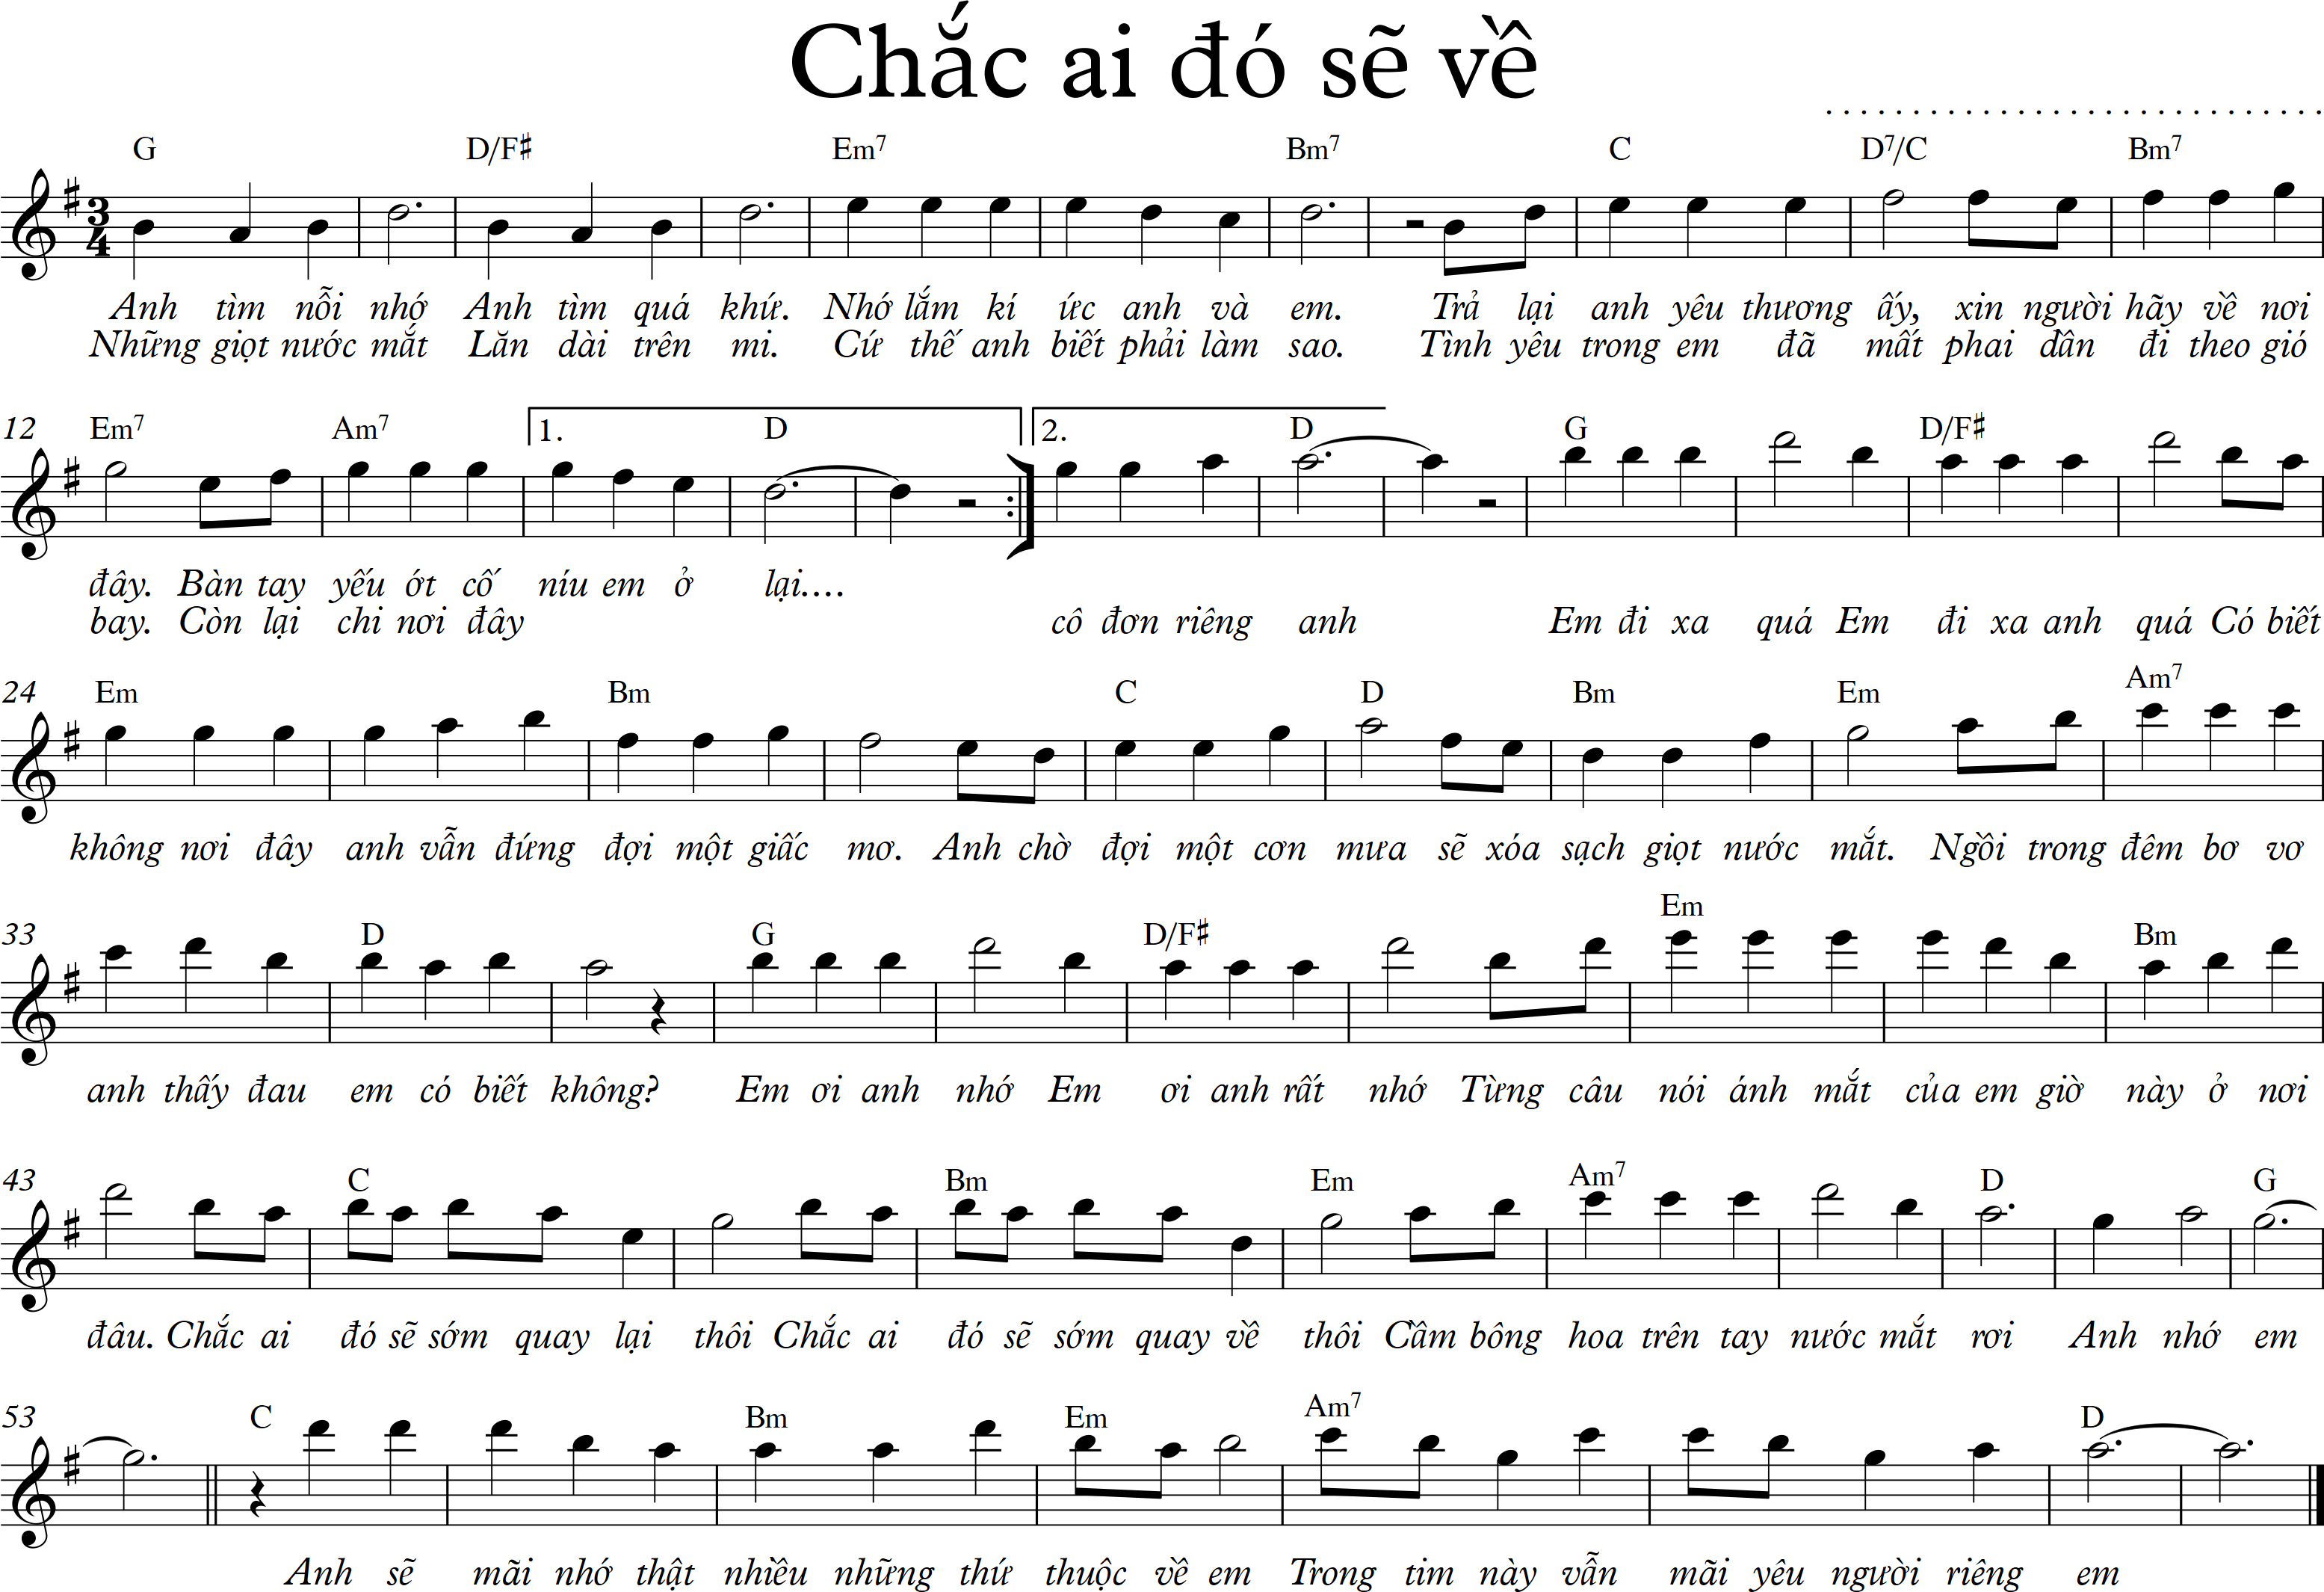 Chac ai do se ve - G